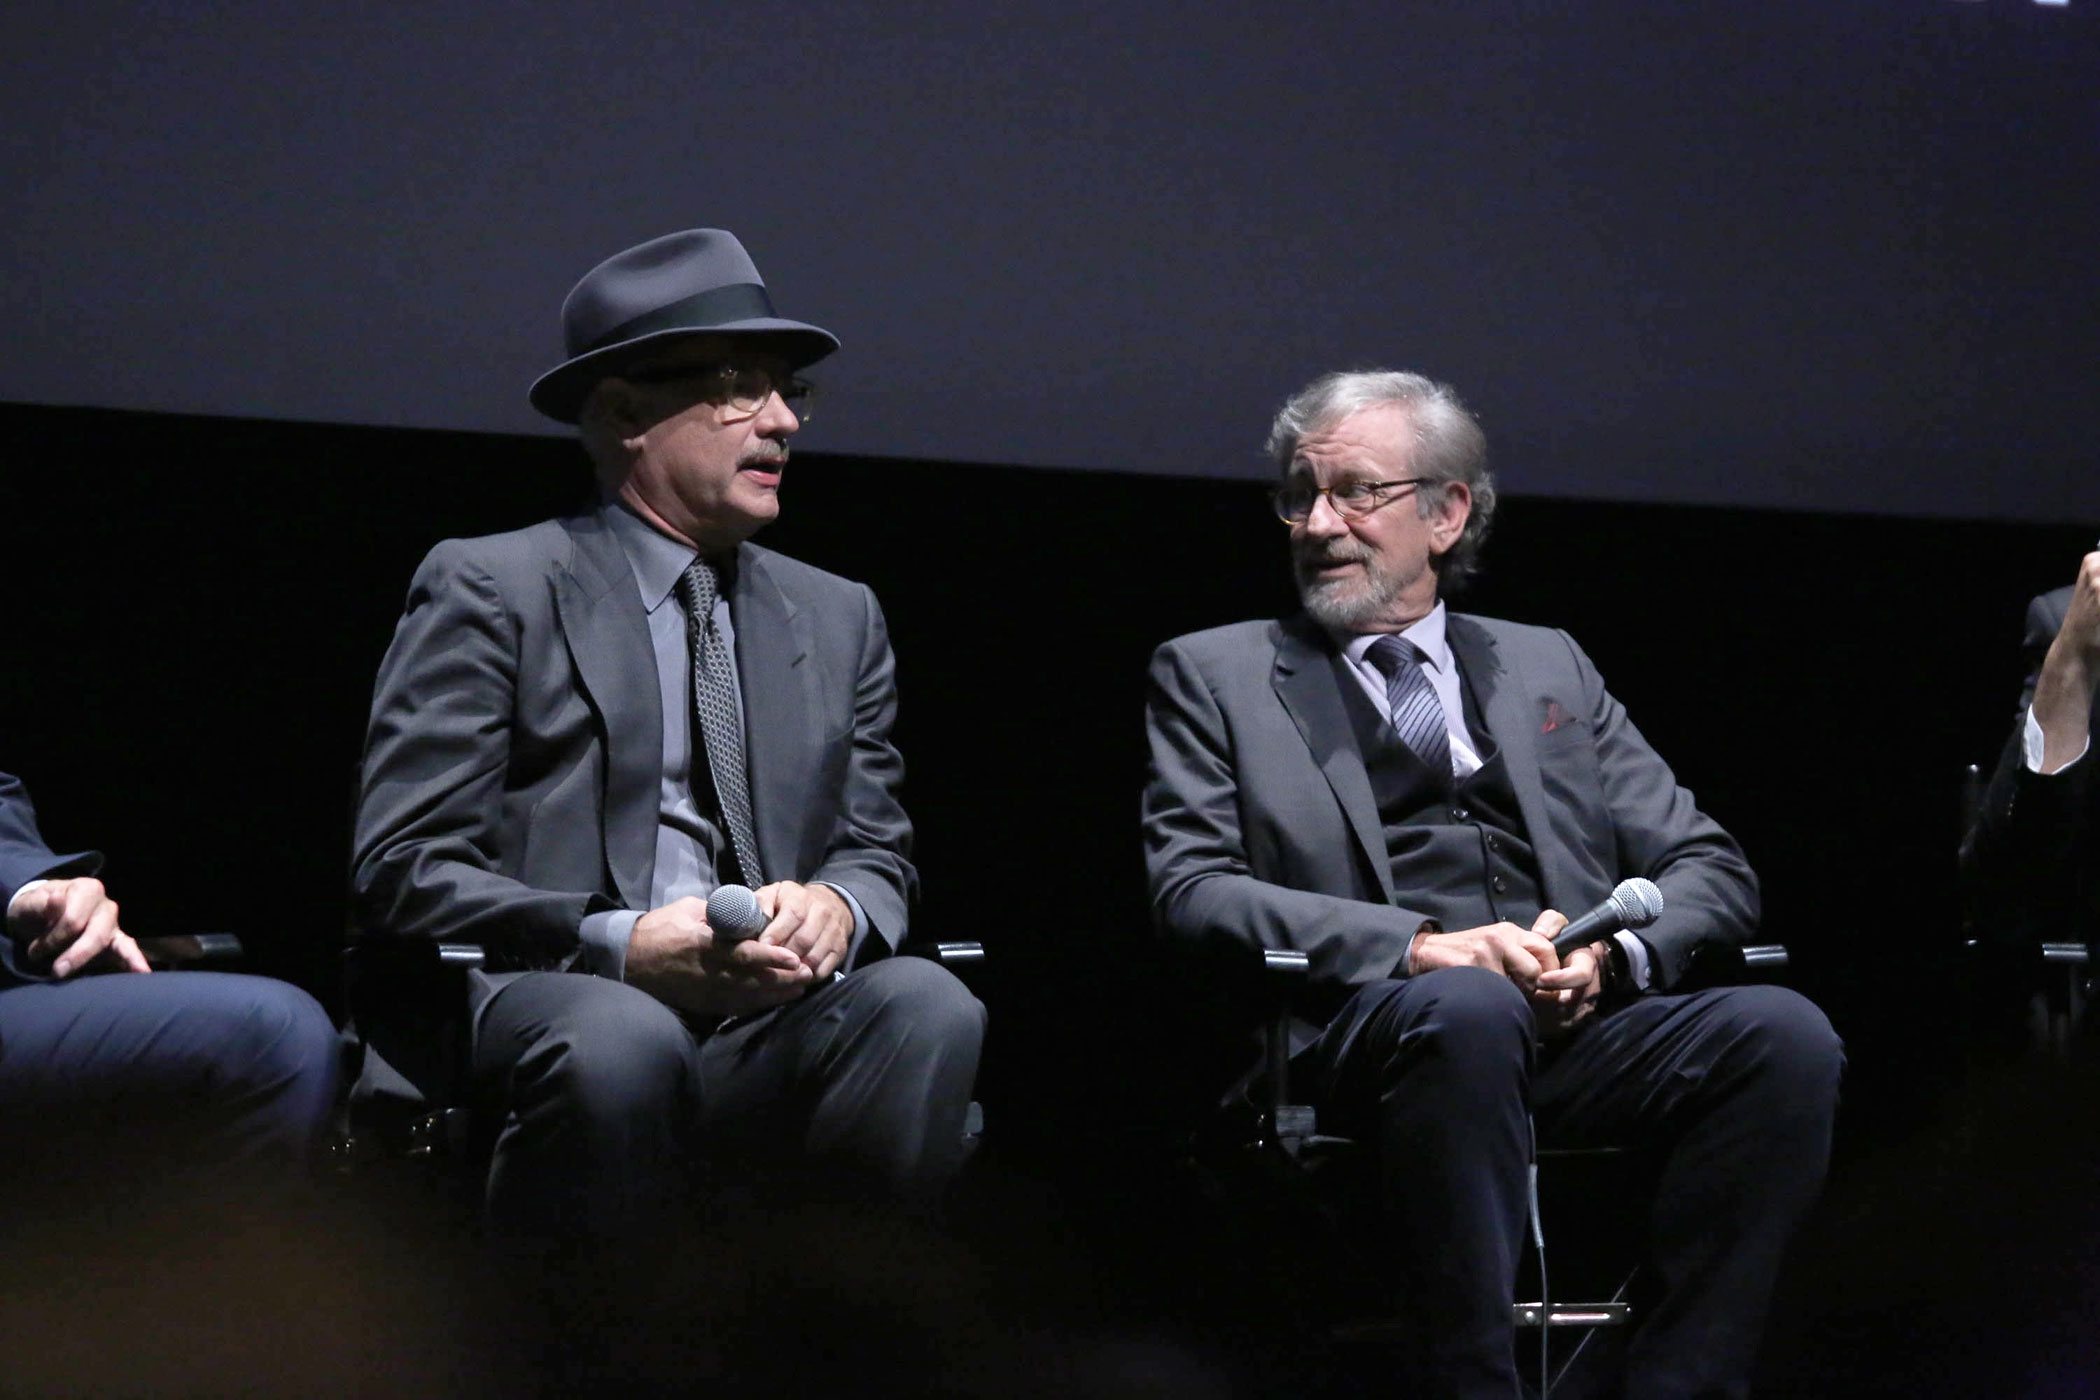 Tom Hanks and director Steven Spielberg attend a Q&A for the film,  Bridge Of Spies  during the 53rd New York Film Festival at Alice Tully Hall, Lincoln Center on Oct. 4, 2015 in New York City.